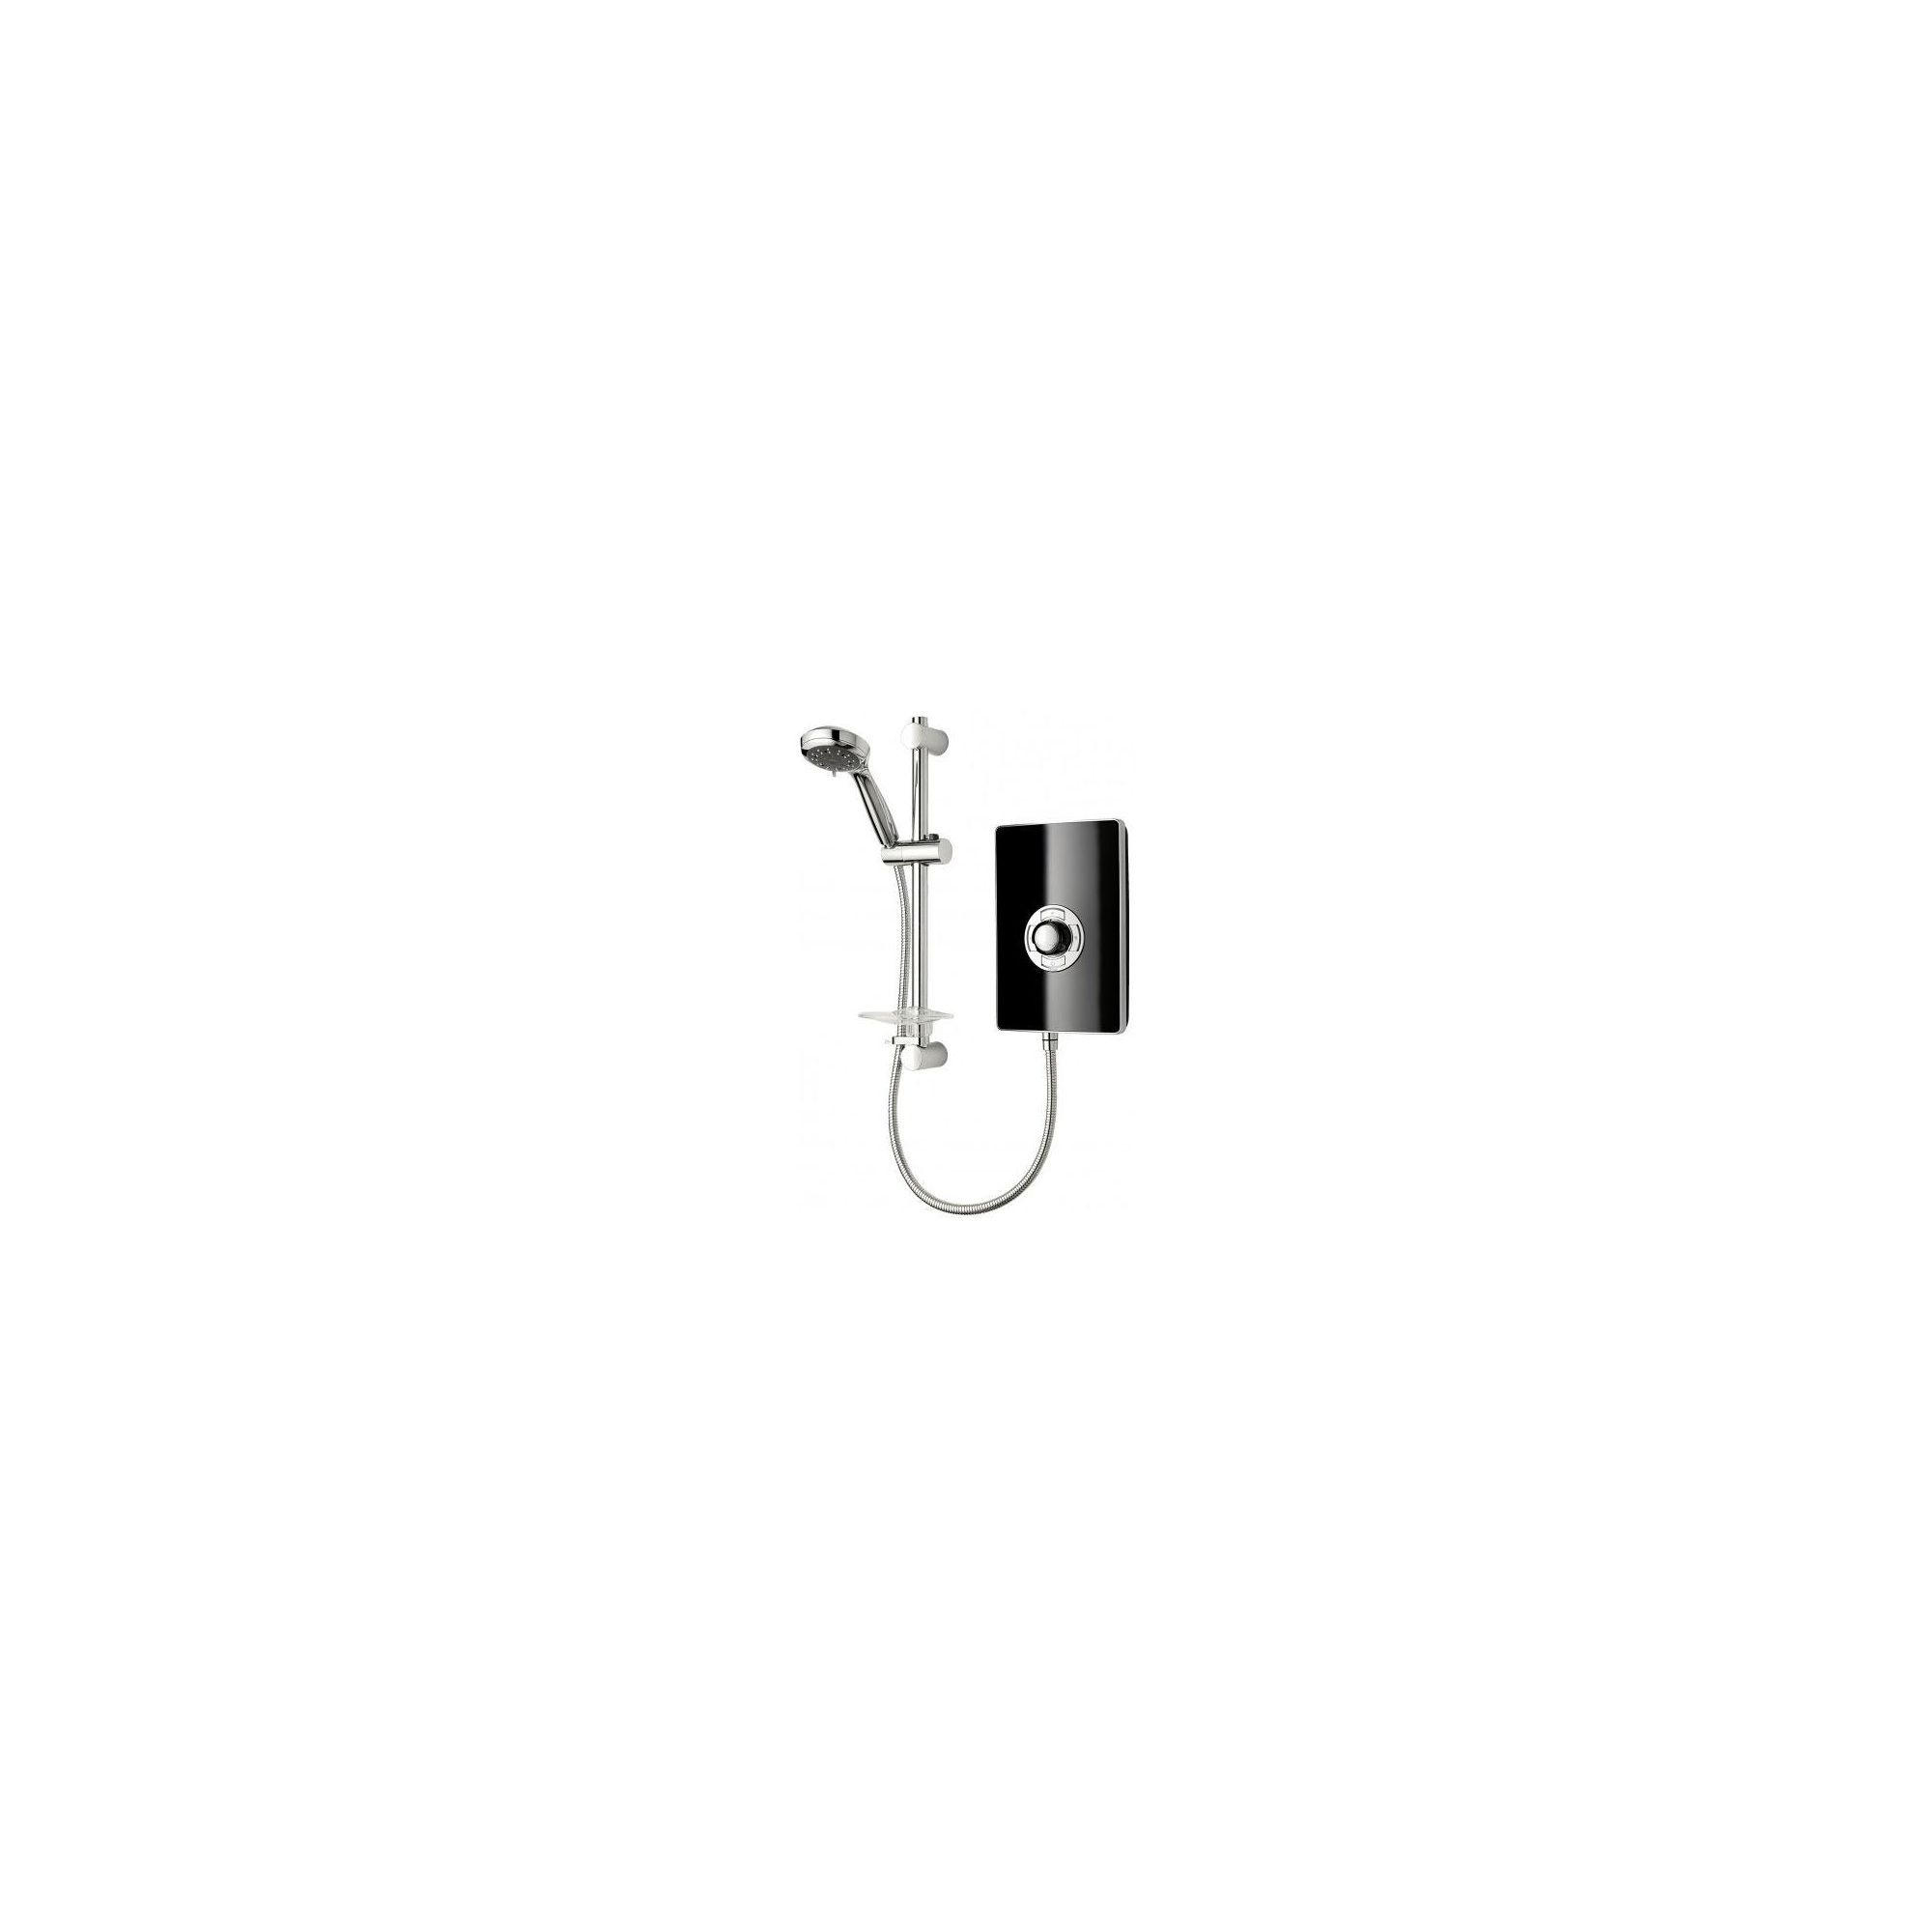 Triton Aspirante Electric Shower Black Gloss 9.5 kW at Tesco Direct